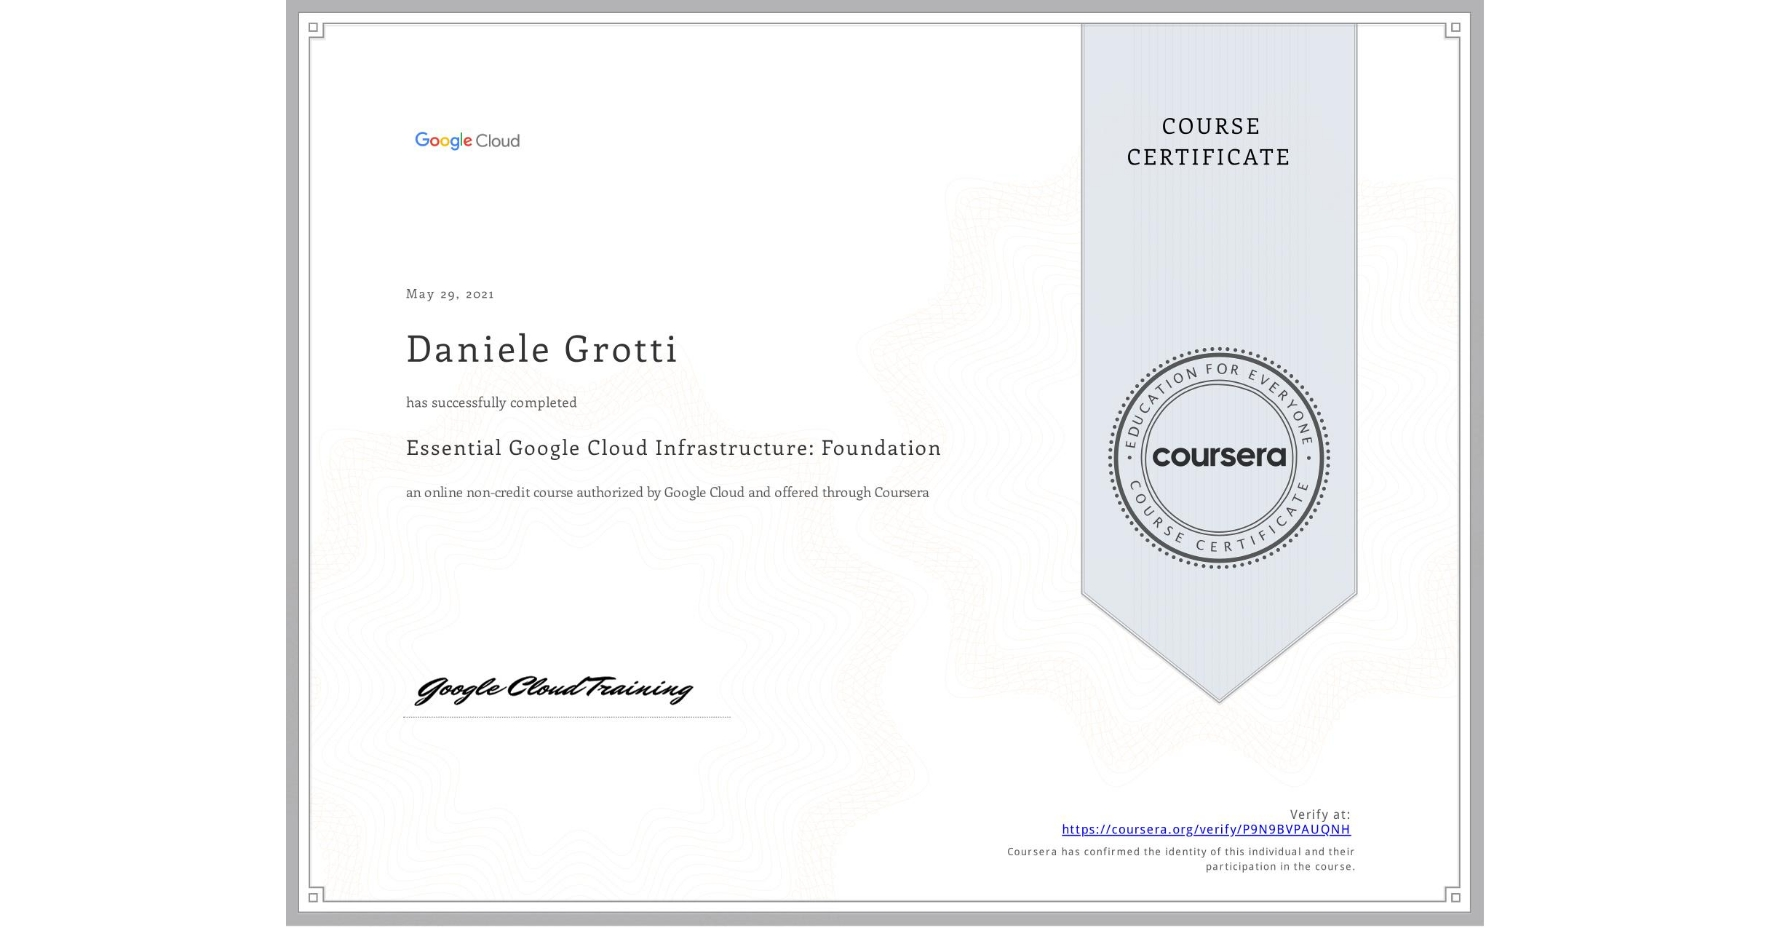 View certificate for Daniele Grotti, Essential Google Cloud Infrastructure: Foundation, an online non-credit course authorized by Google Cloud and offered through Coursera